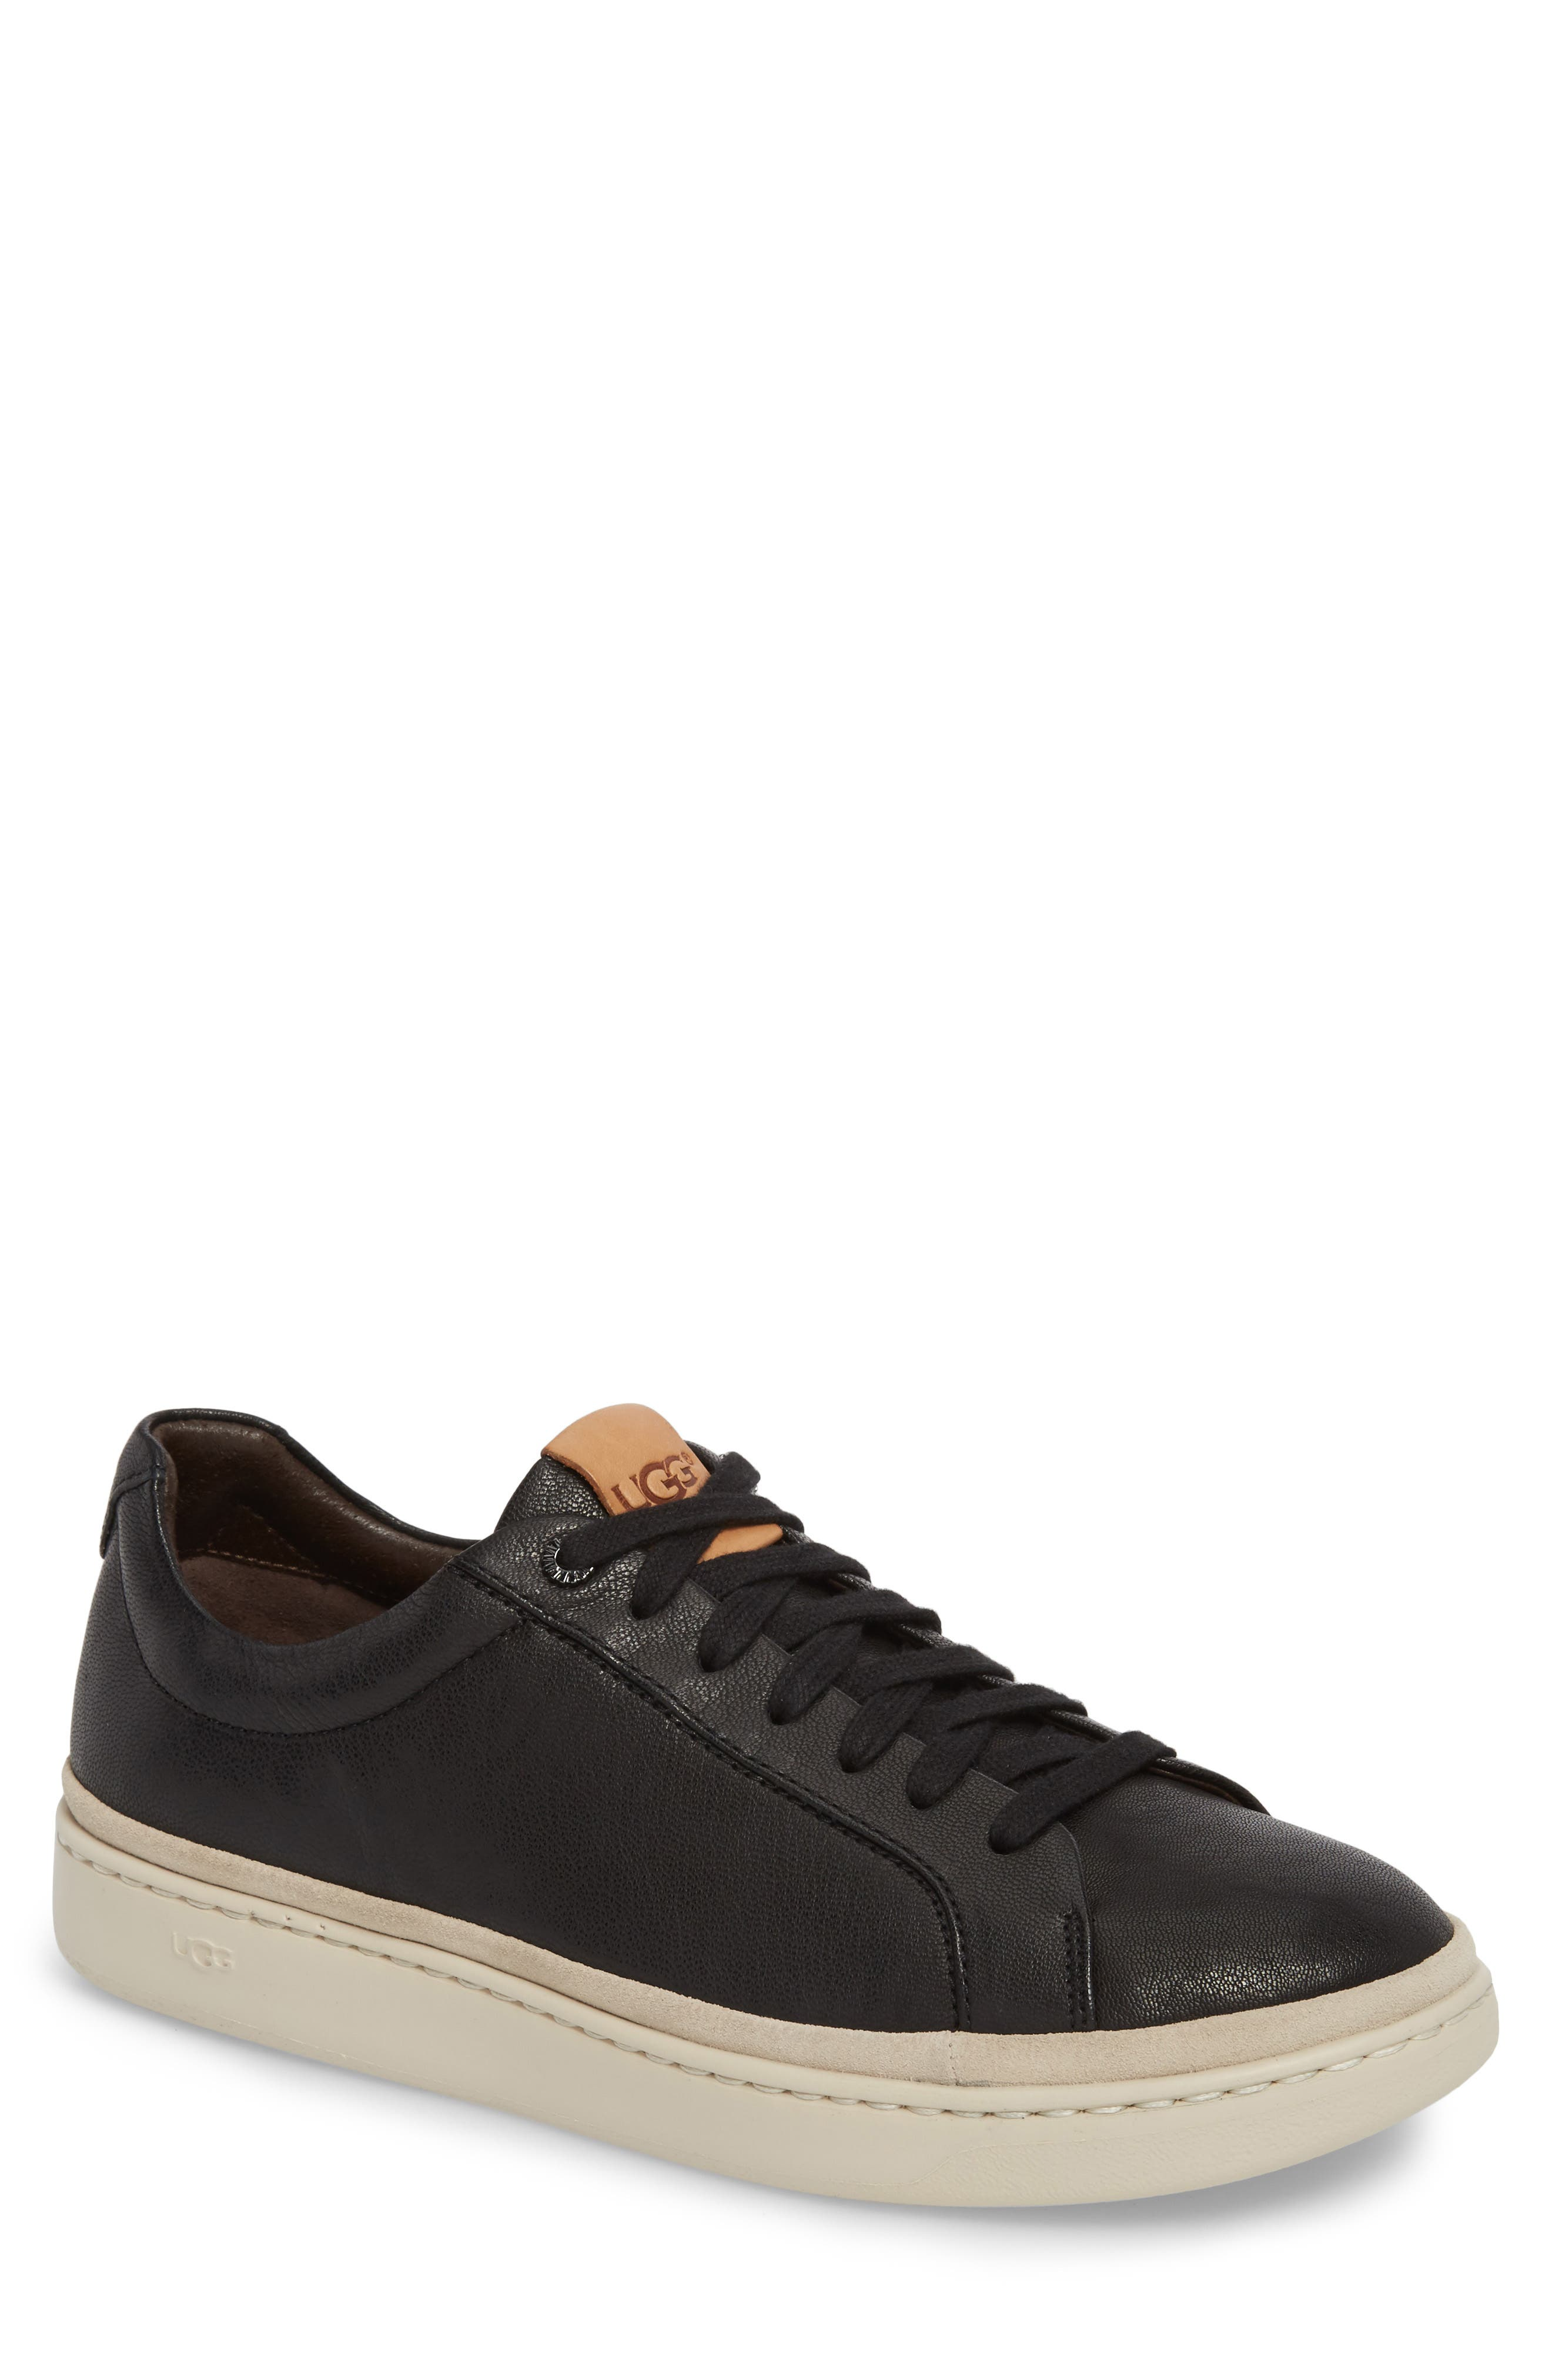 Brecken Sneaker,                             Main thumbnail 1, color,                             BLACK LEATHER